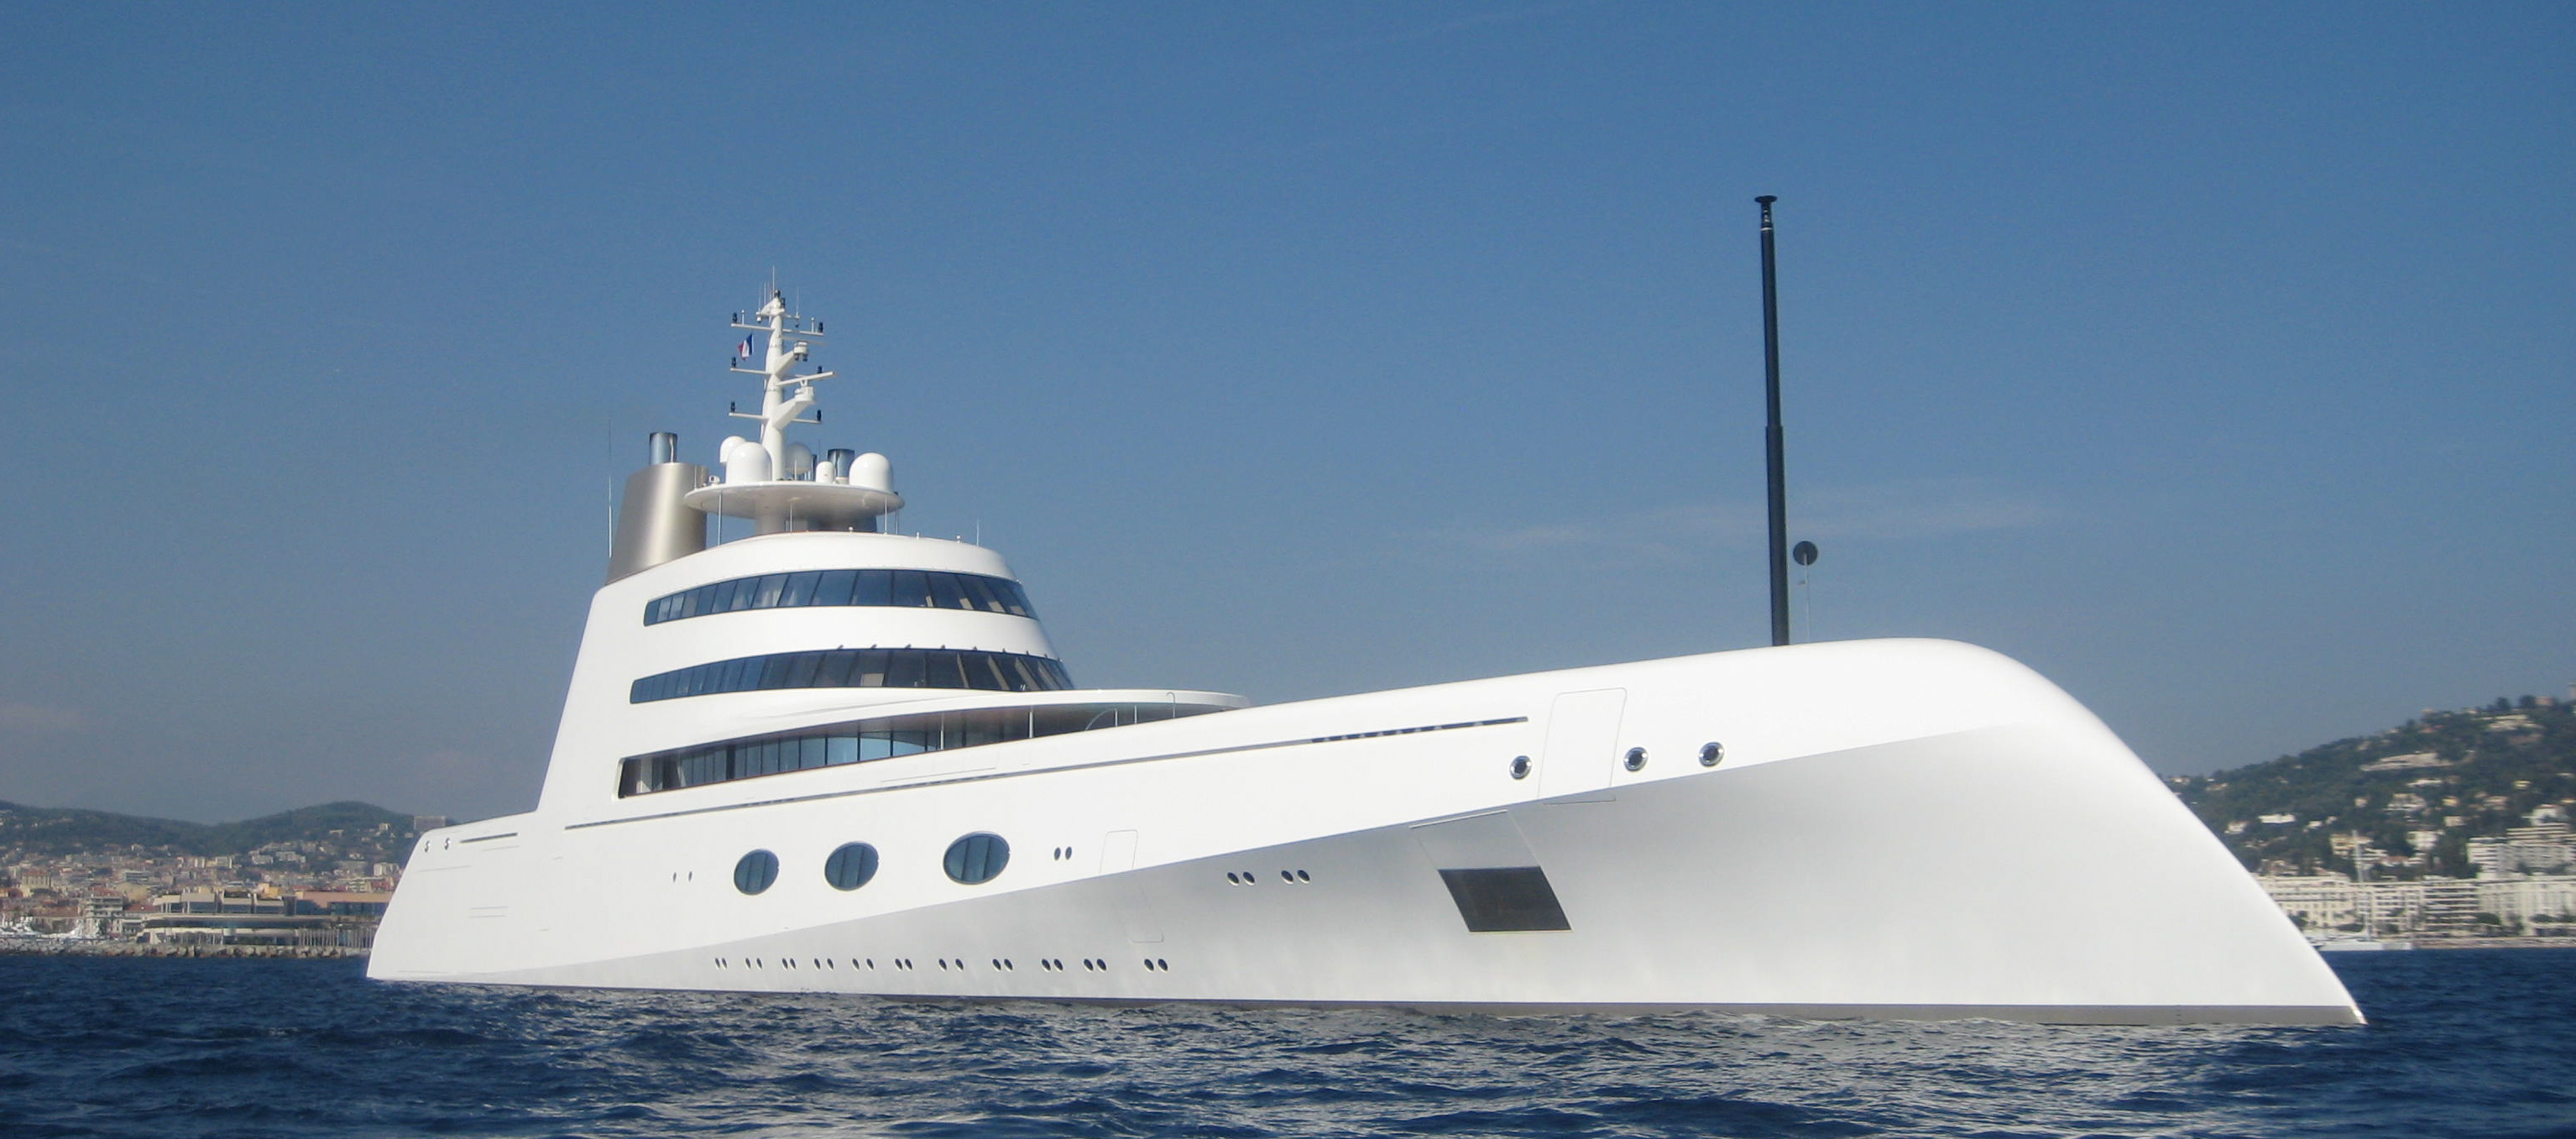 For Sale $300m: The World's Most Extravagant SuperYacht ...